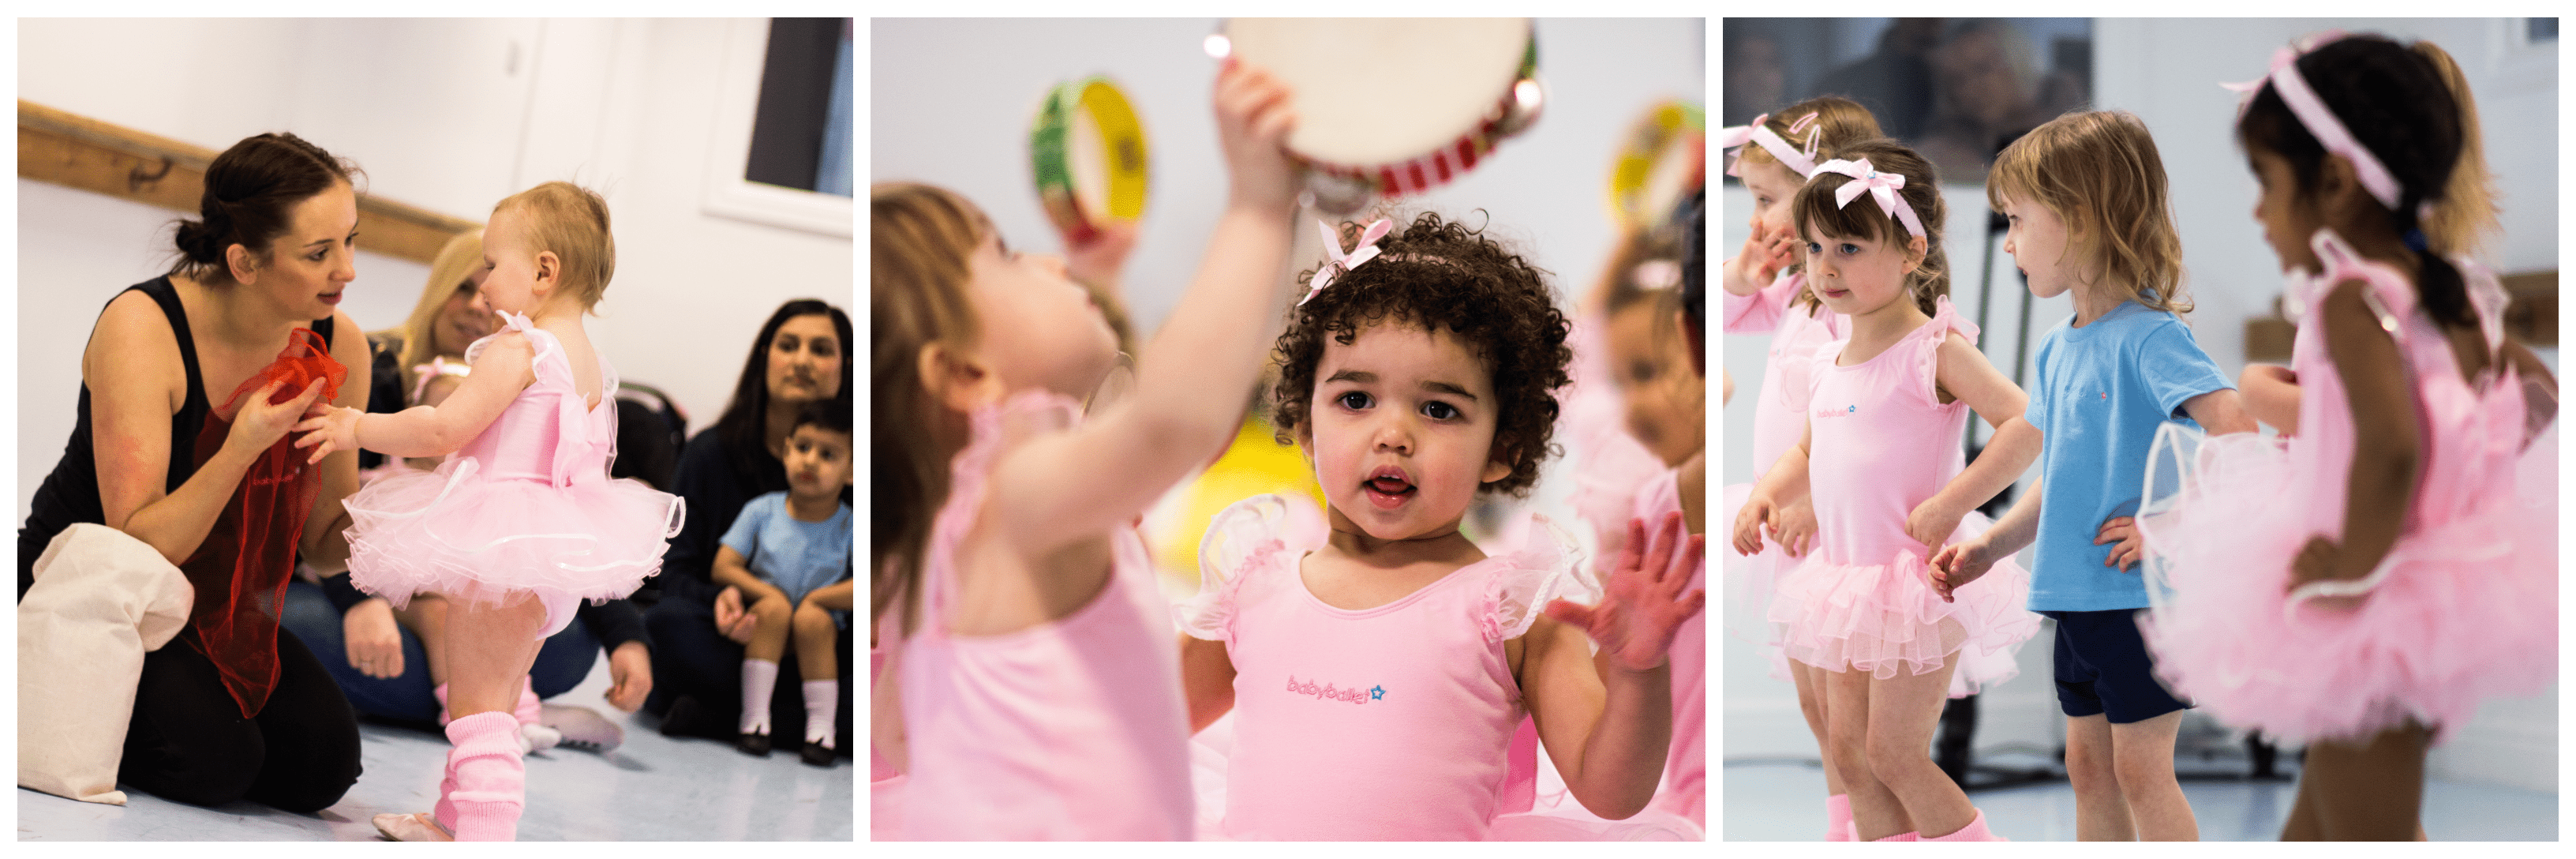 babyballet dance classes Birmingham west